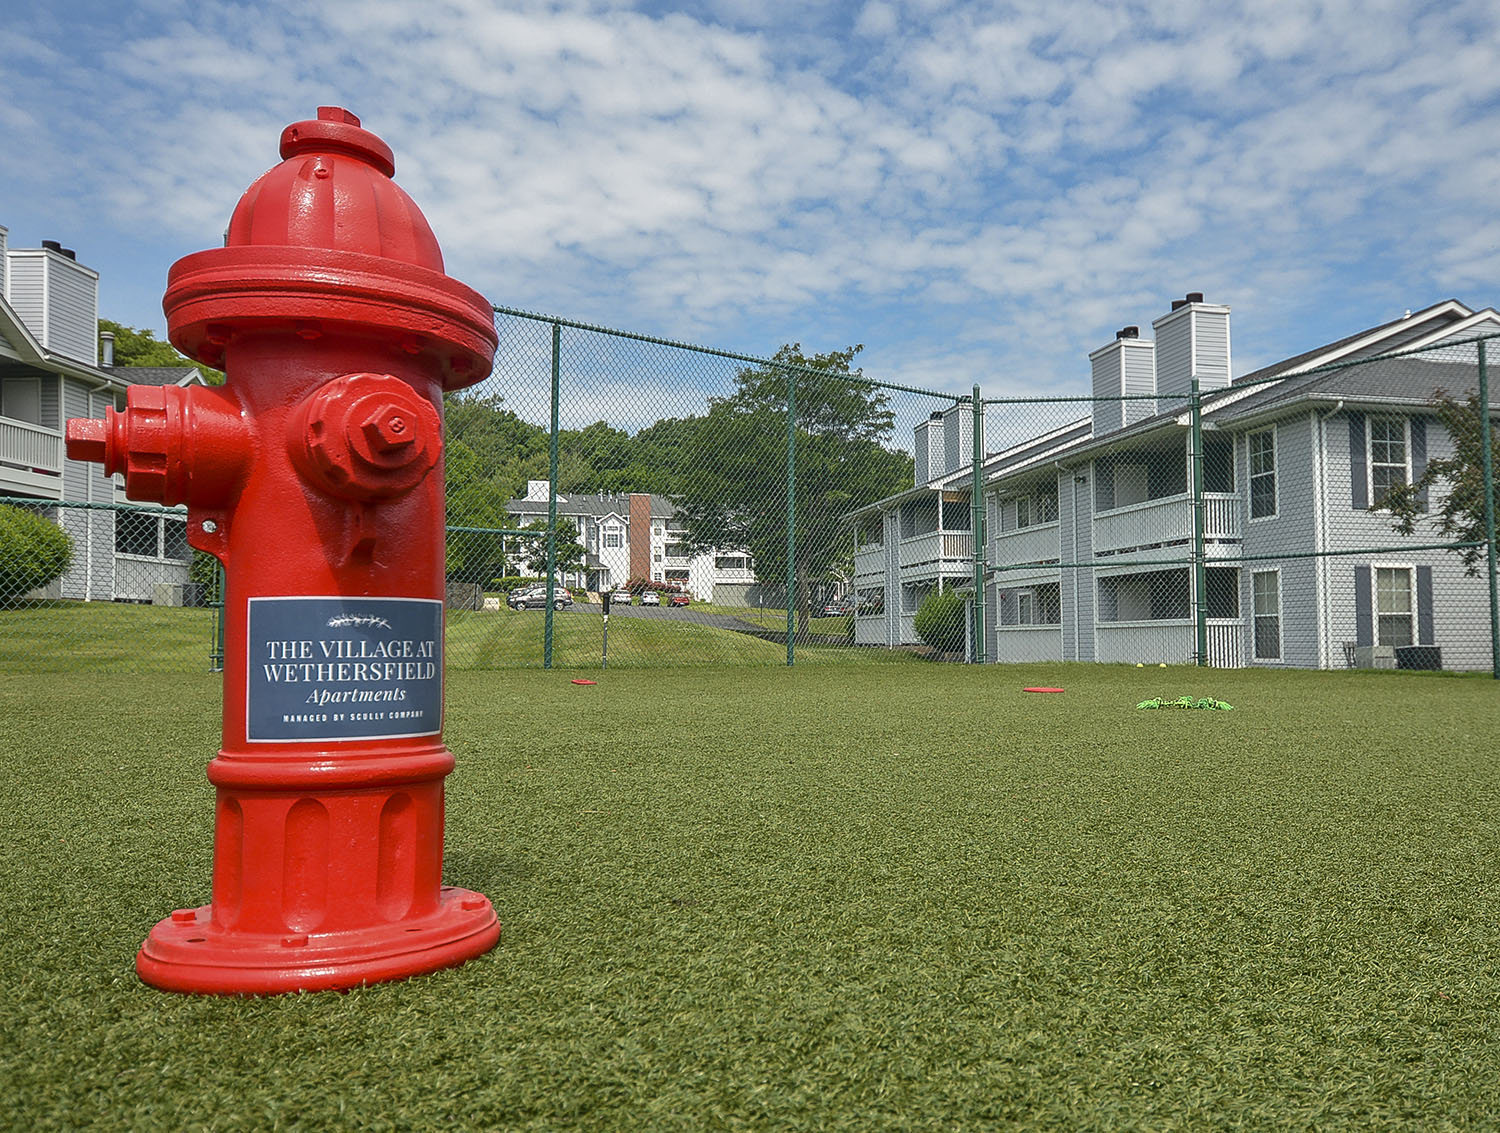 dog park with a red fire hydrant